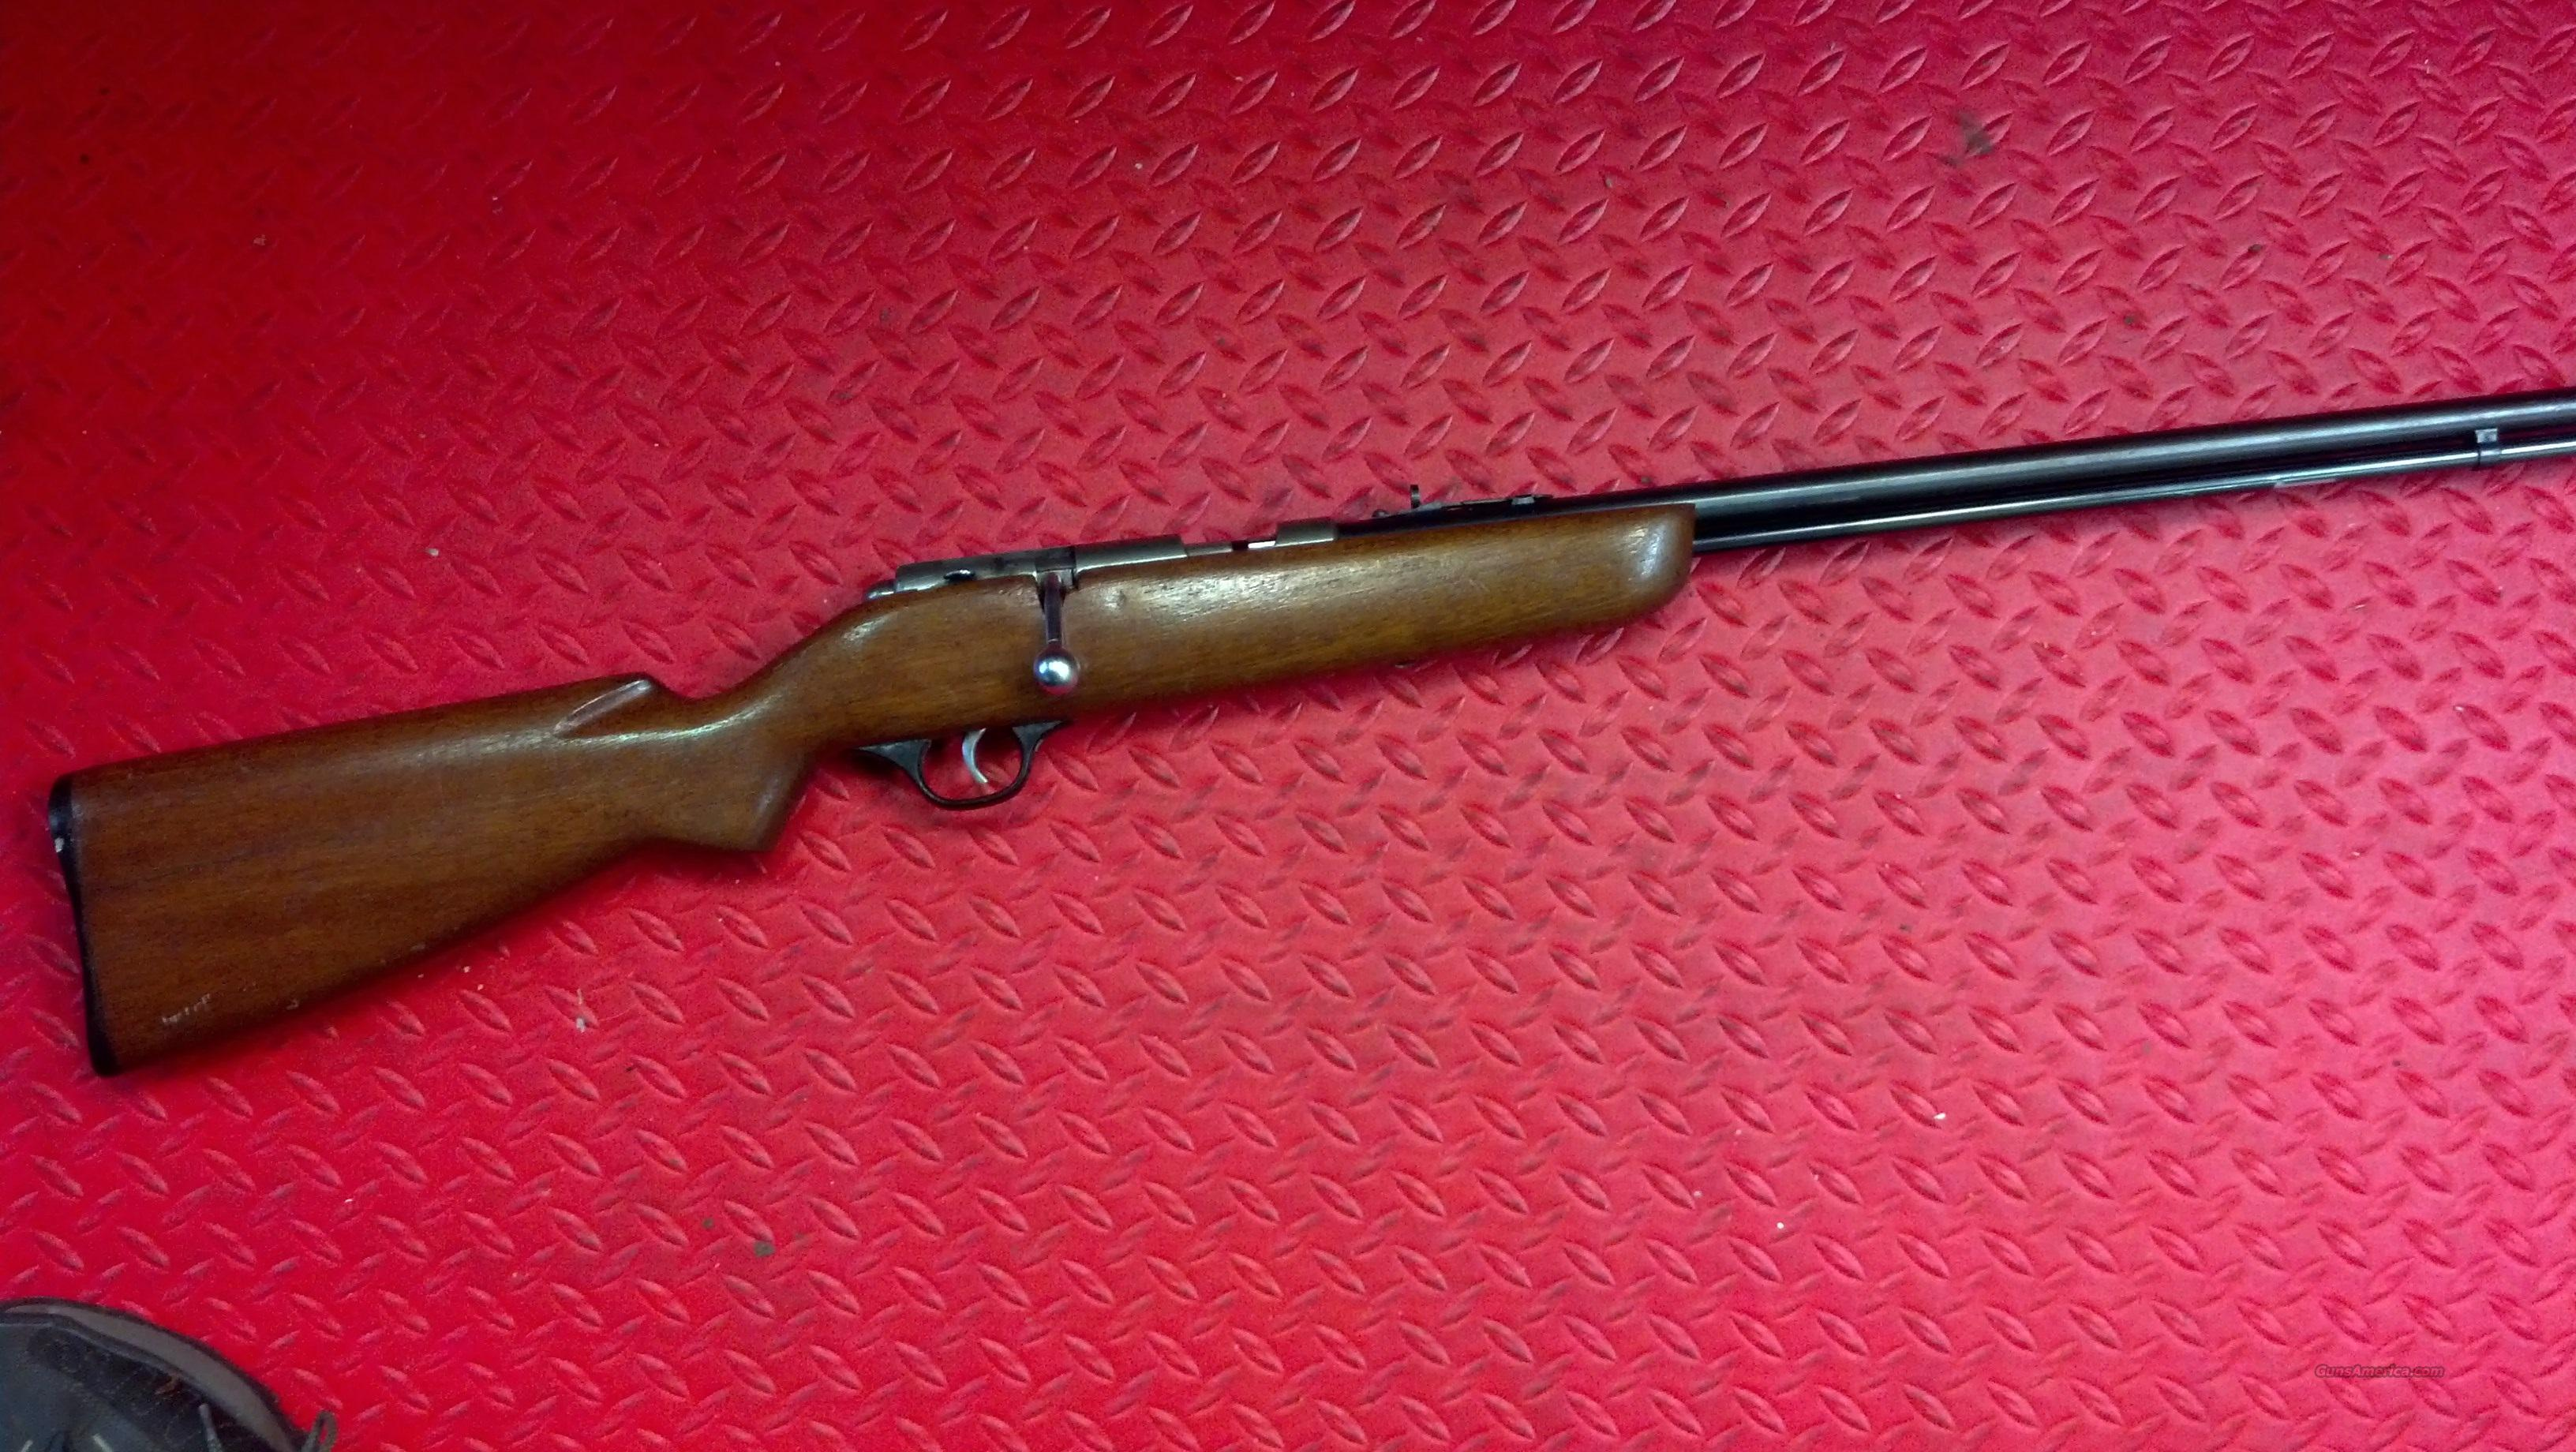 Marlin model 81 DL tube-fed 22LR rifle.  Guns > Rifles > Marlin Rifles > Modern > Bolt/Pump